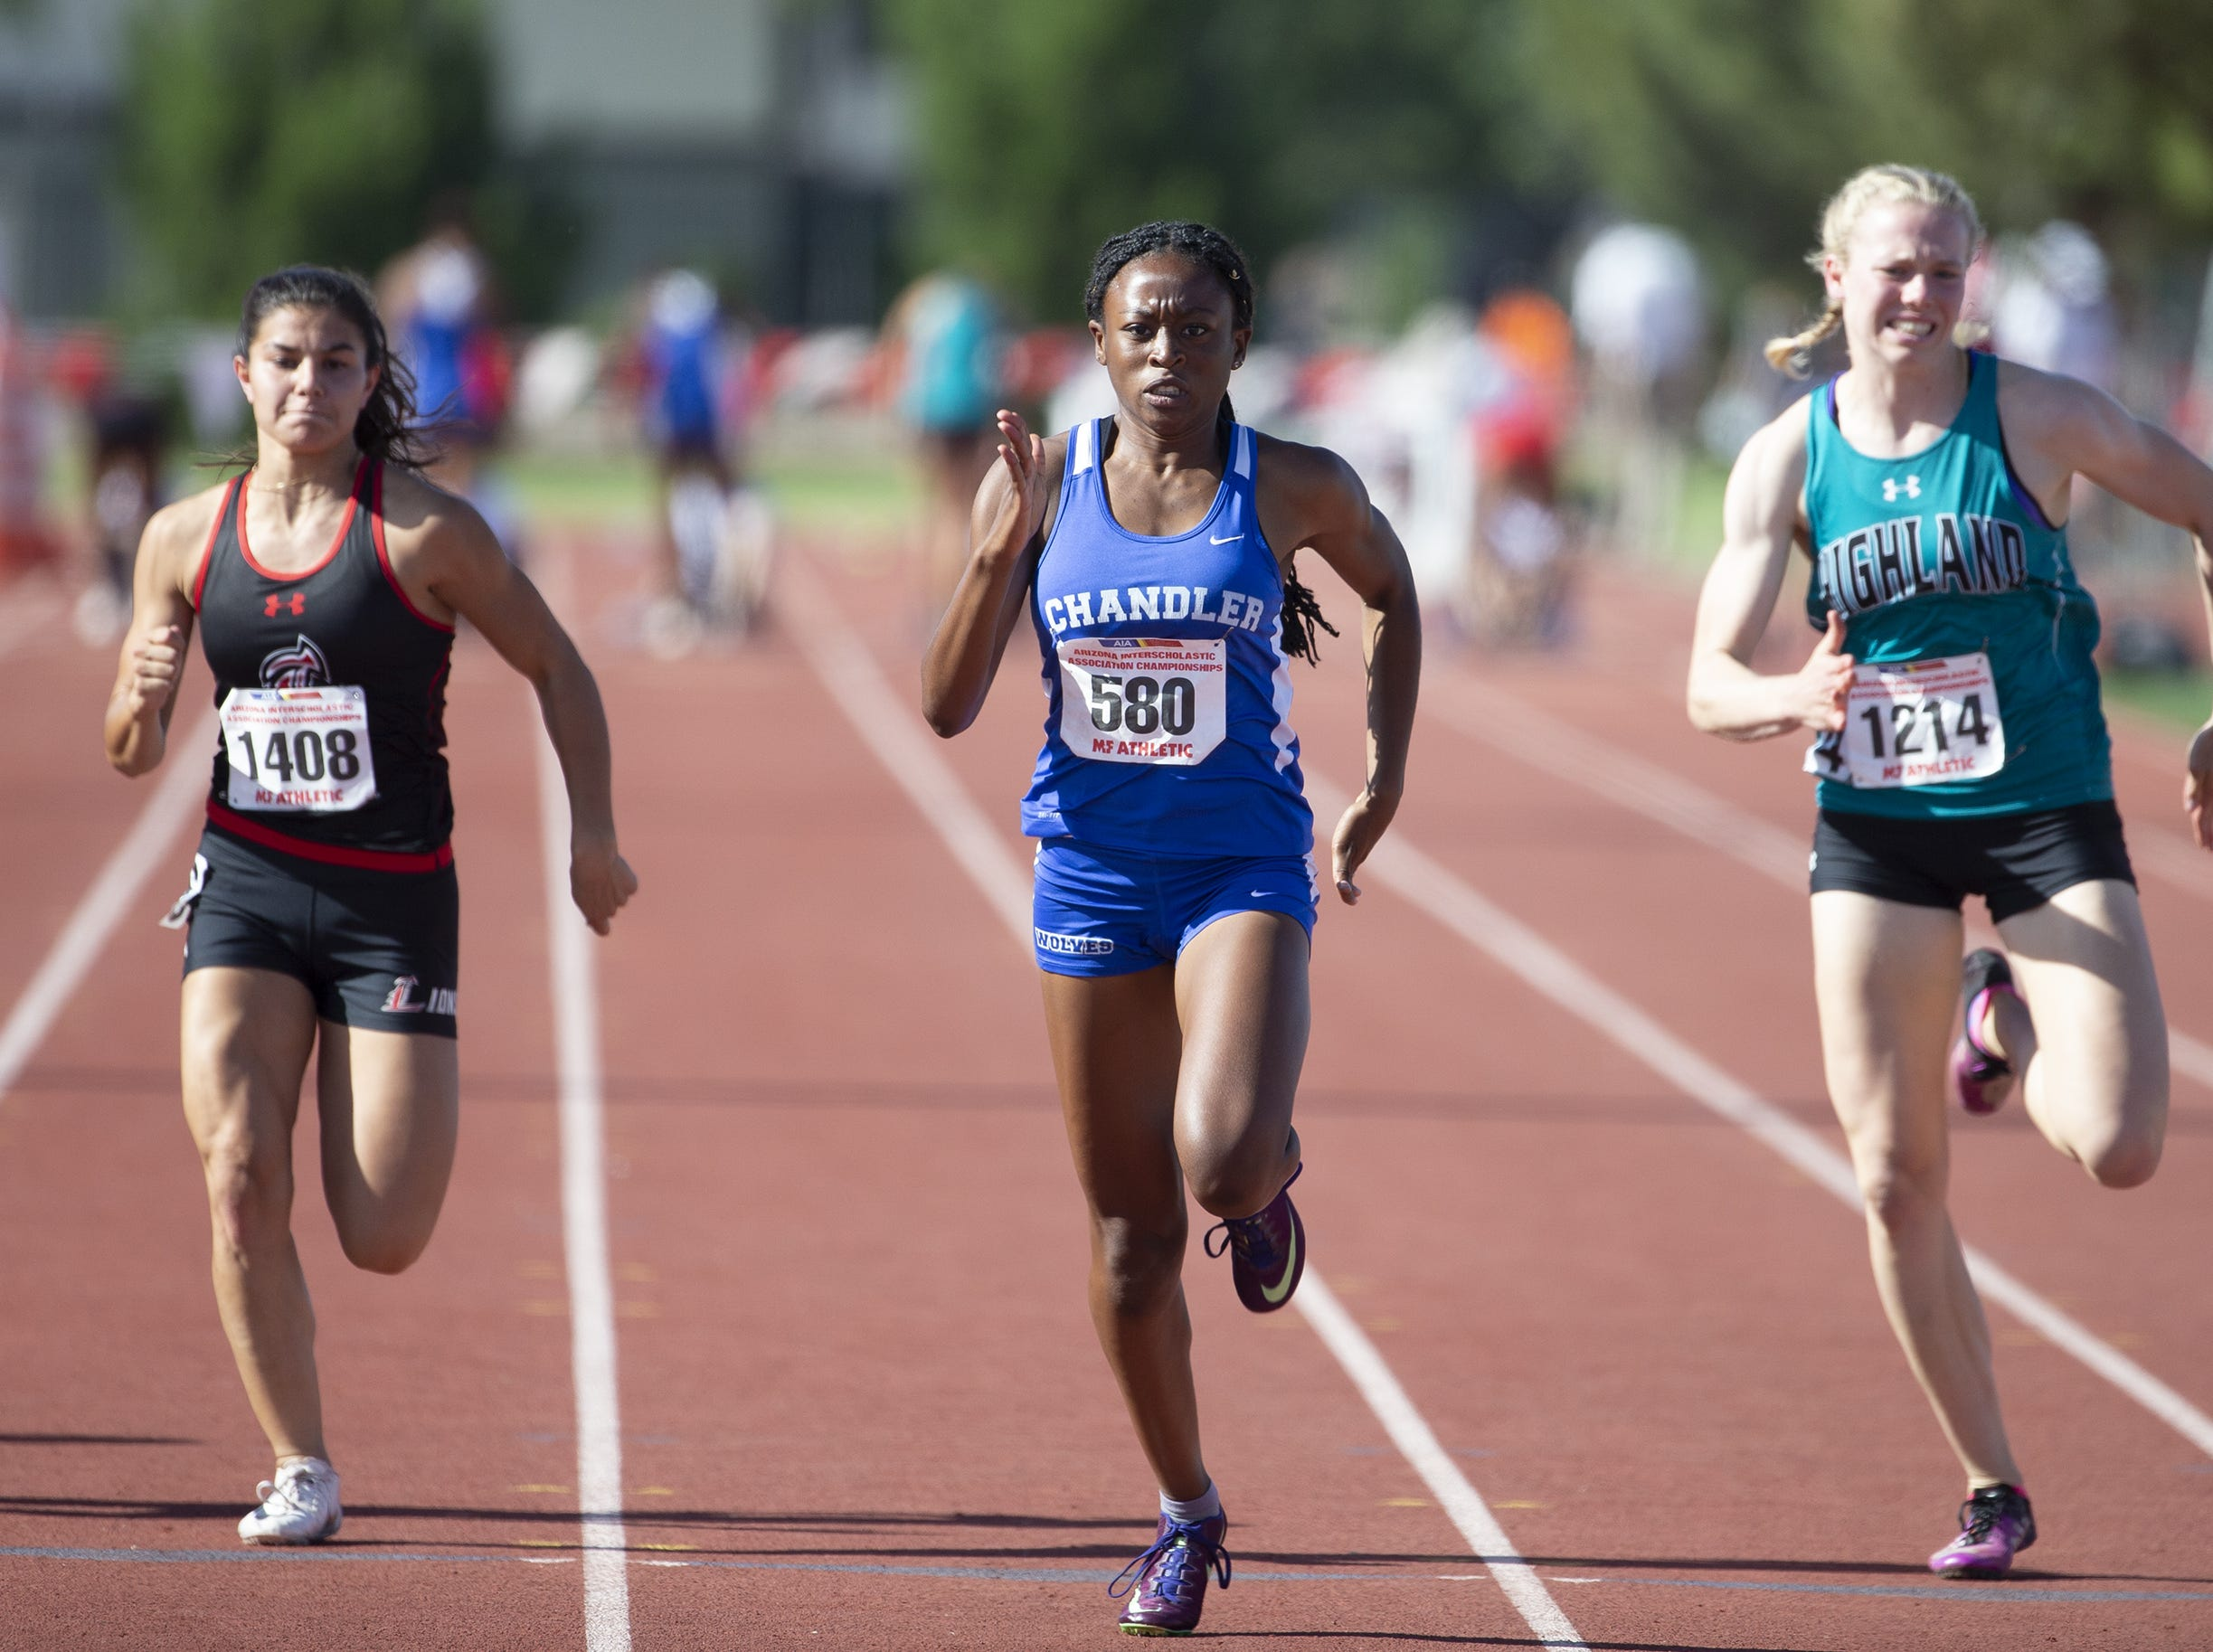 Liberty's Ella Escobar, Chandler's Jocelyn Johnson, and Highland's Alisha Ellsworth compete in the Girls 100 meter dash Div. I during the state track and field meet at Mesa Community college on May 1, 2019.